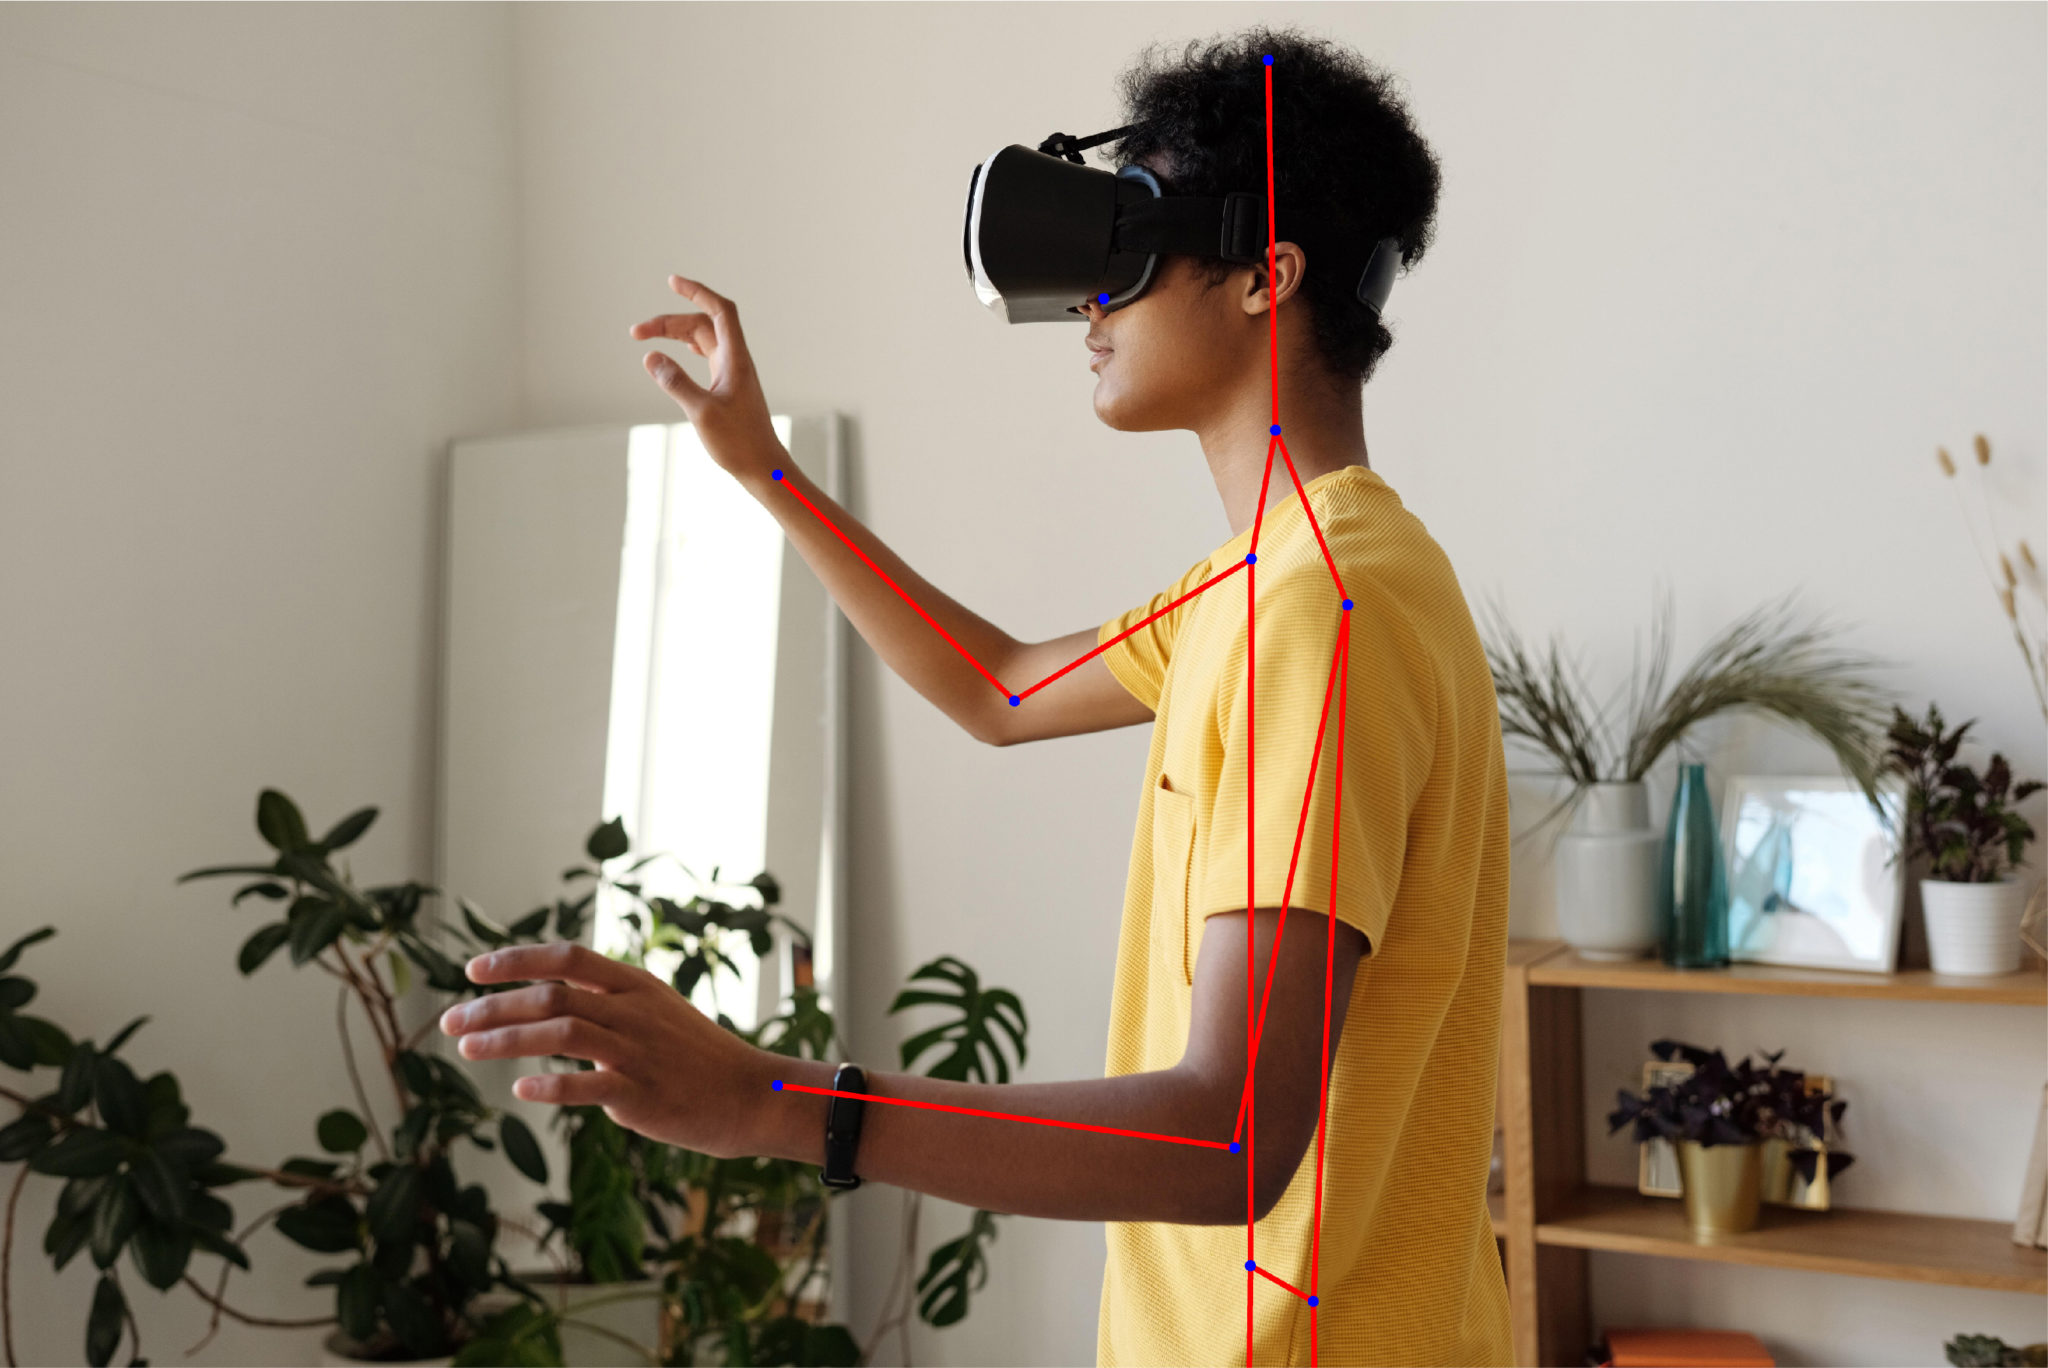 Augmented reality game development using pose estimation is ready for use with our pre-trained models